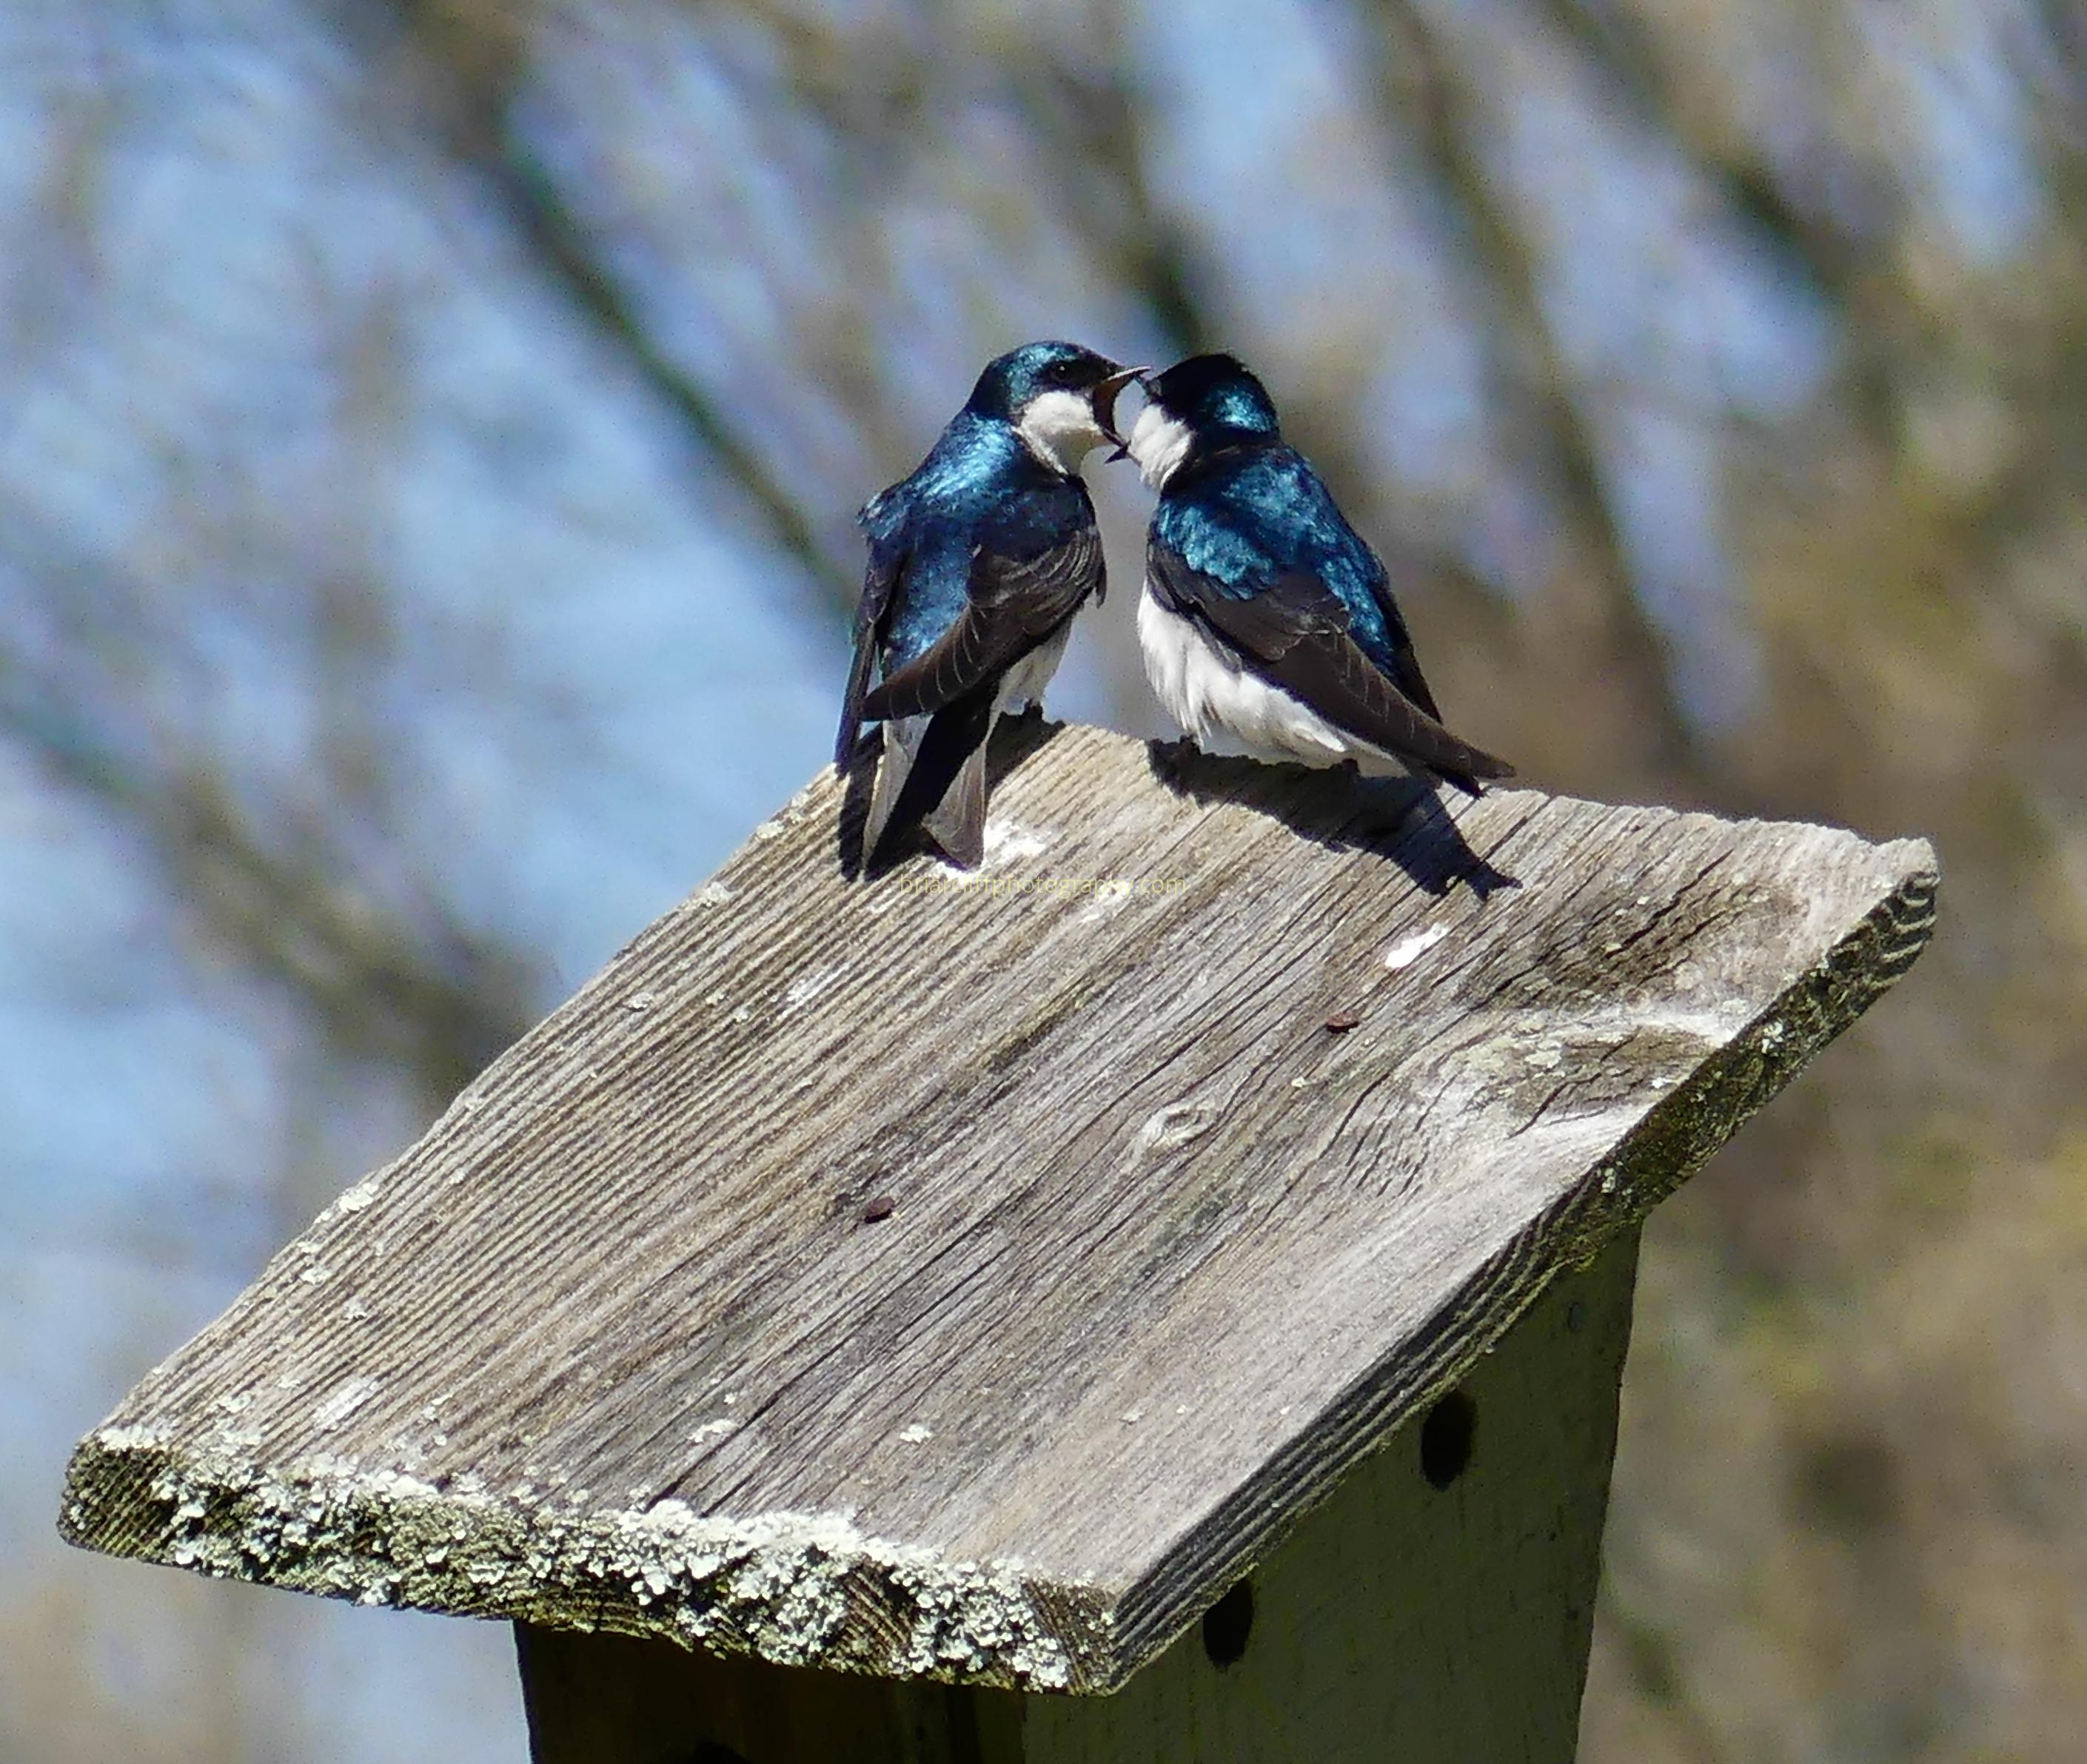 Two male tree swallows